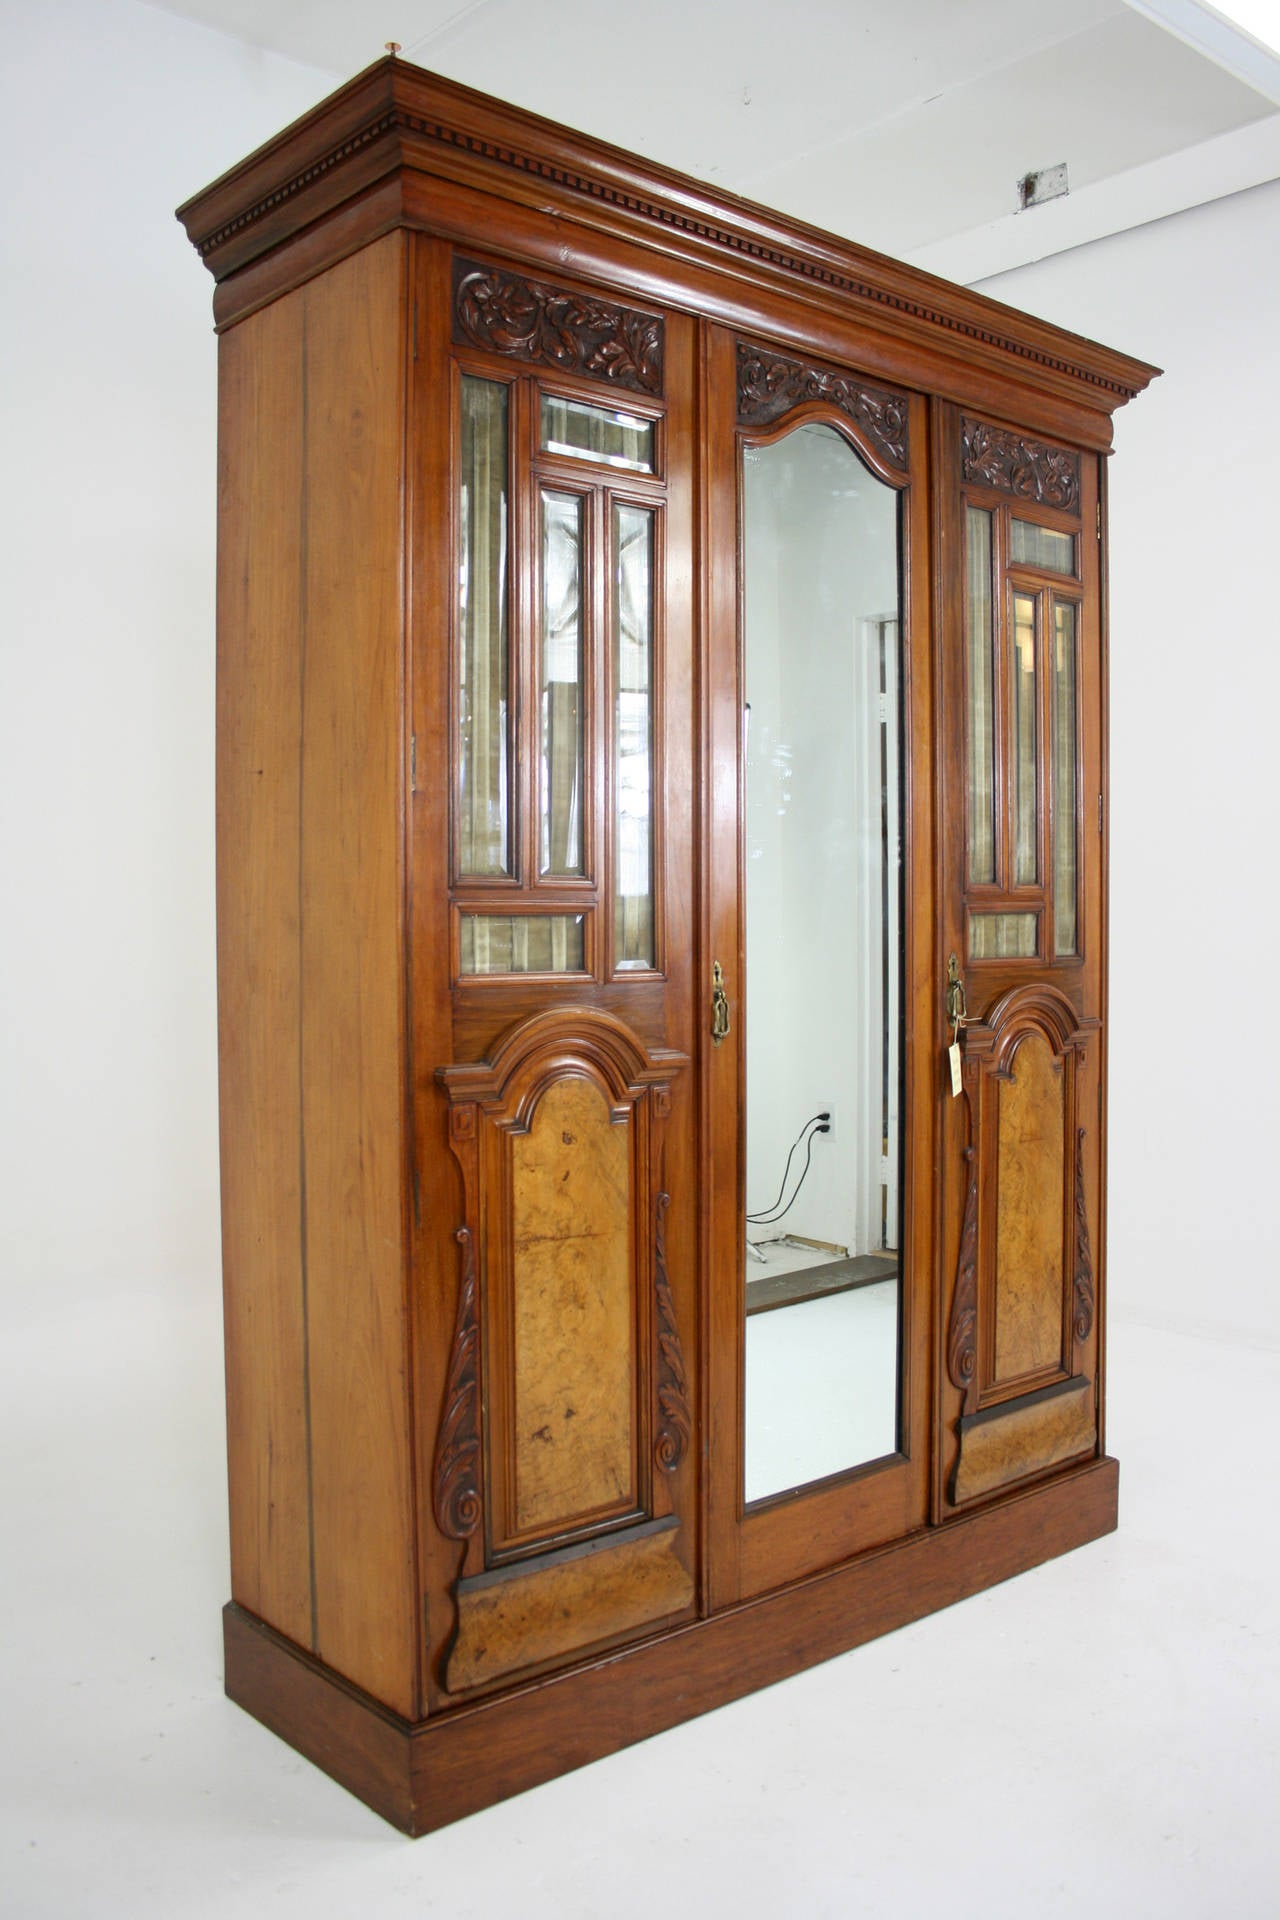 Charmant Scottish Victorian Walnut 3 Door Wardrobe Cupboard Armoire With Mirror For  Sale